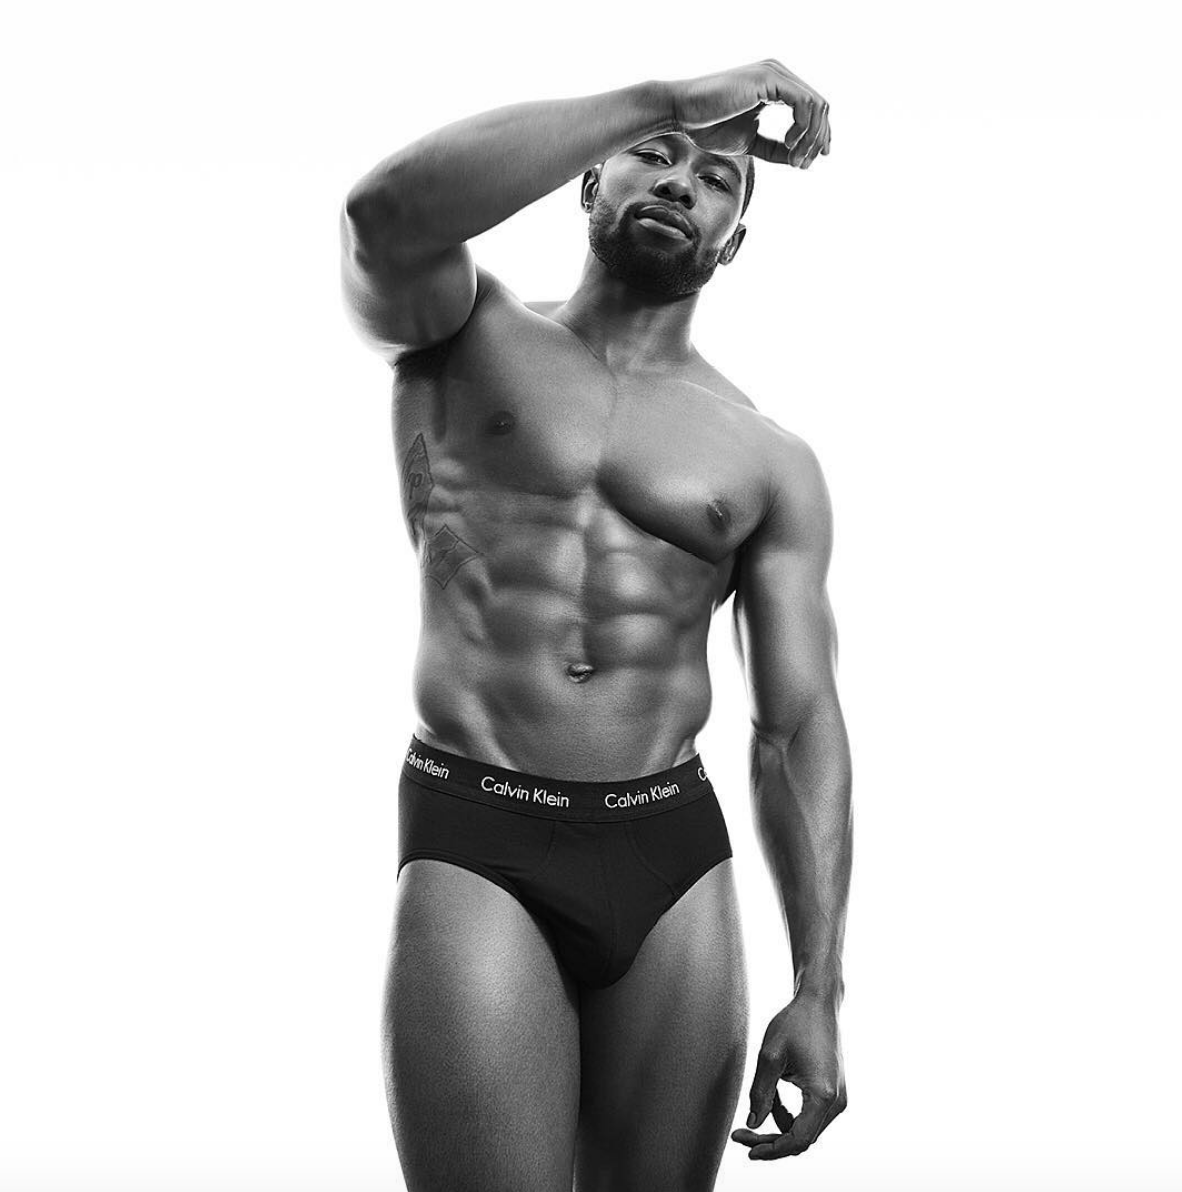 Black boys models penis gay the magnificent 9